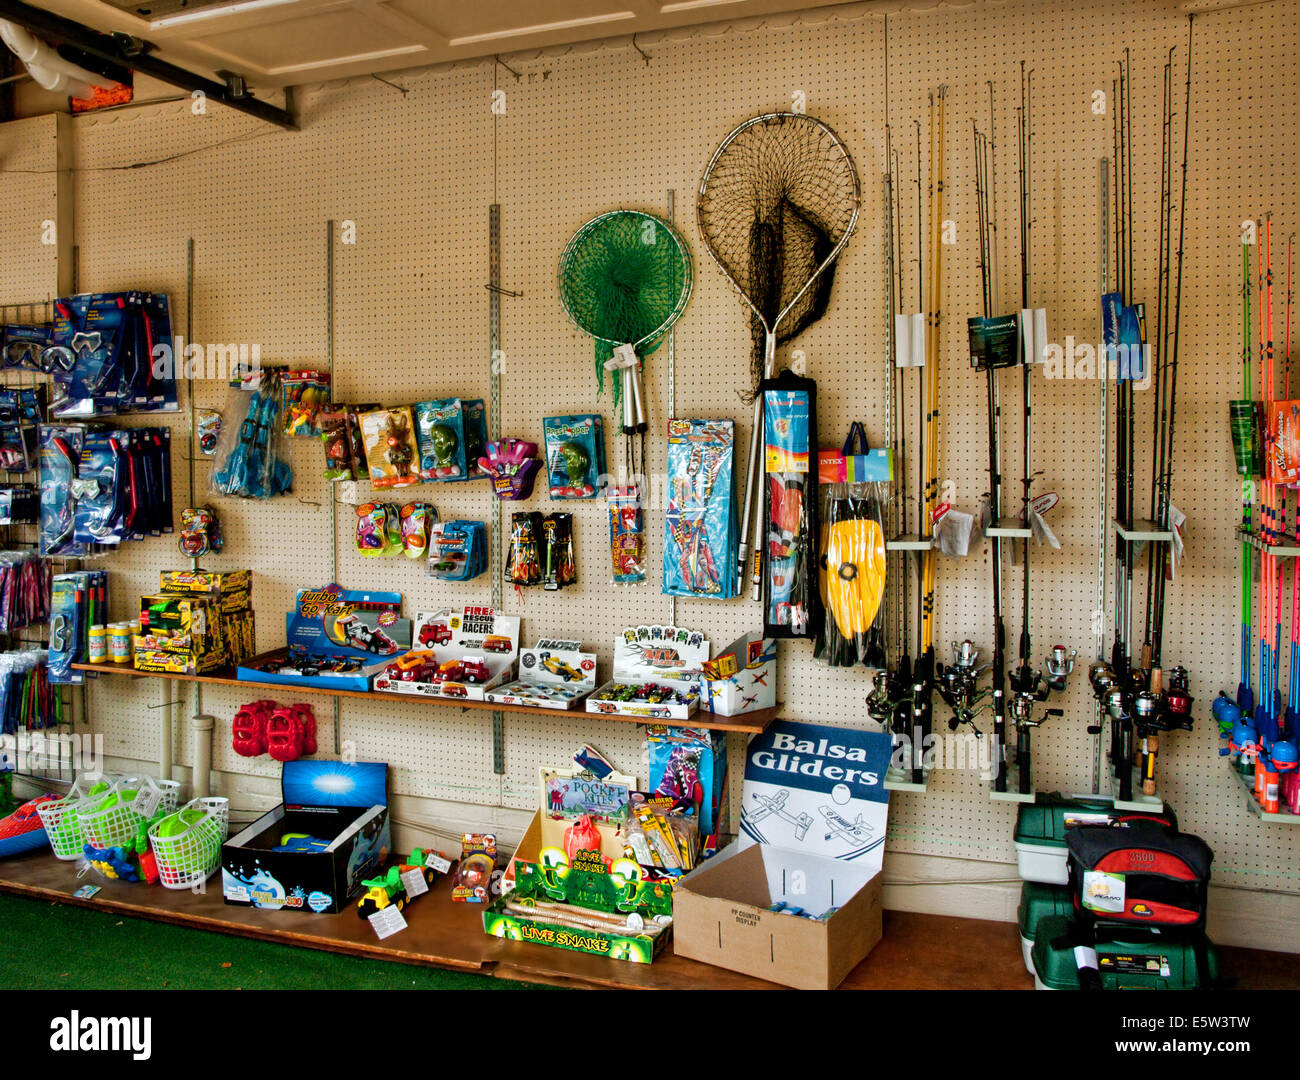 Fishing equipment for sale at an outdoor market stock for Fishing supply stores